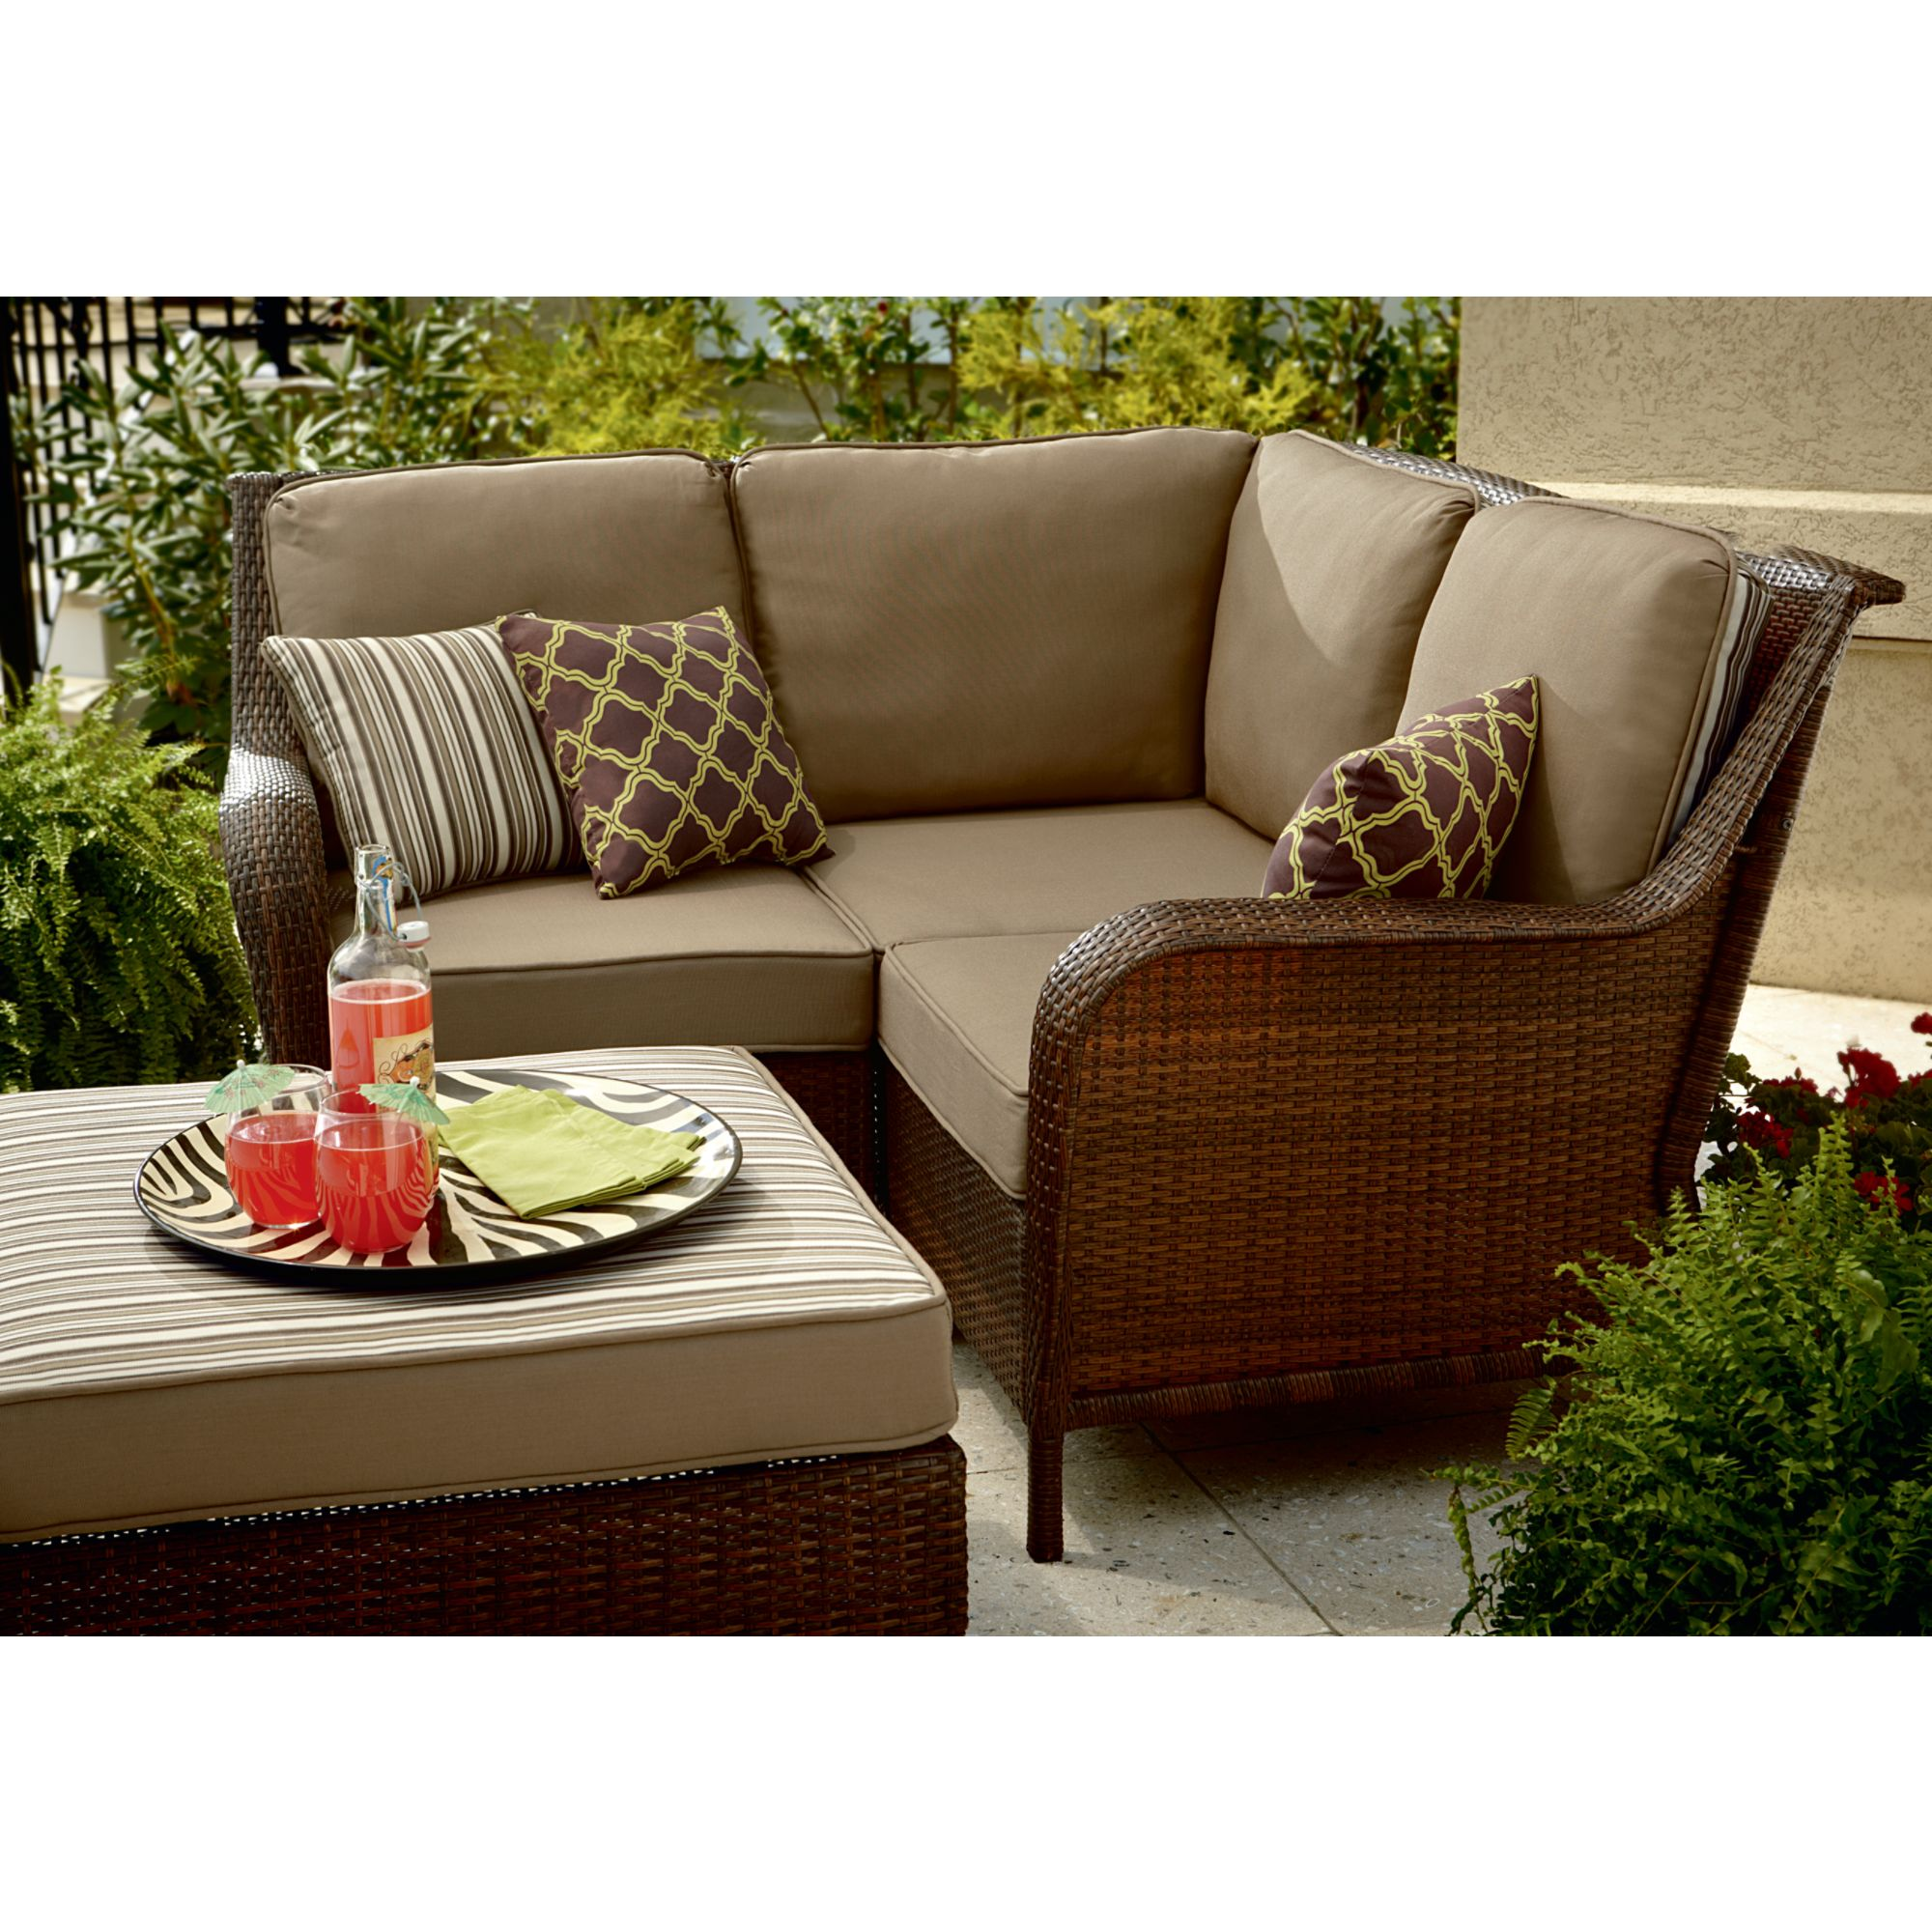 sears outdoor sectional sofa lily mayfield 4 piece wicker patio set update your